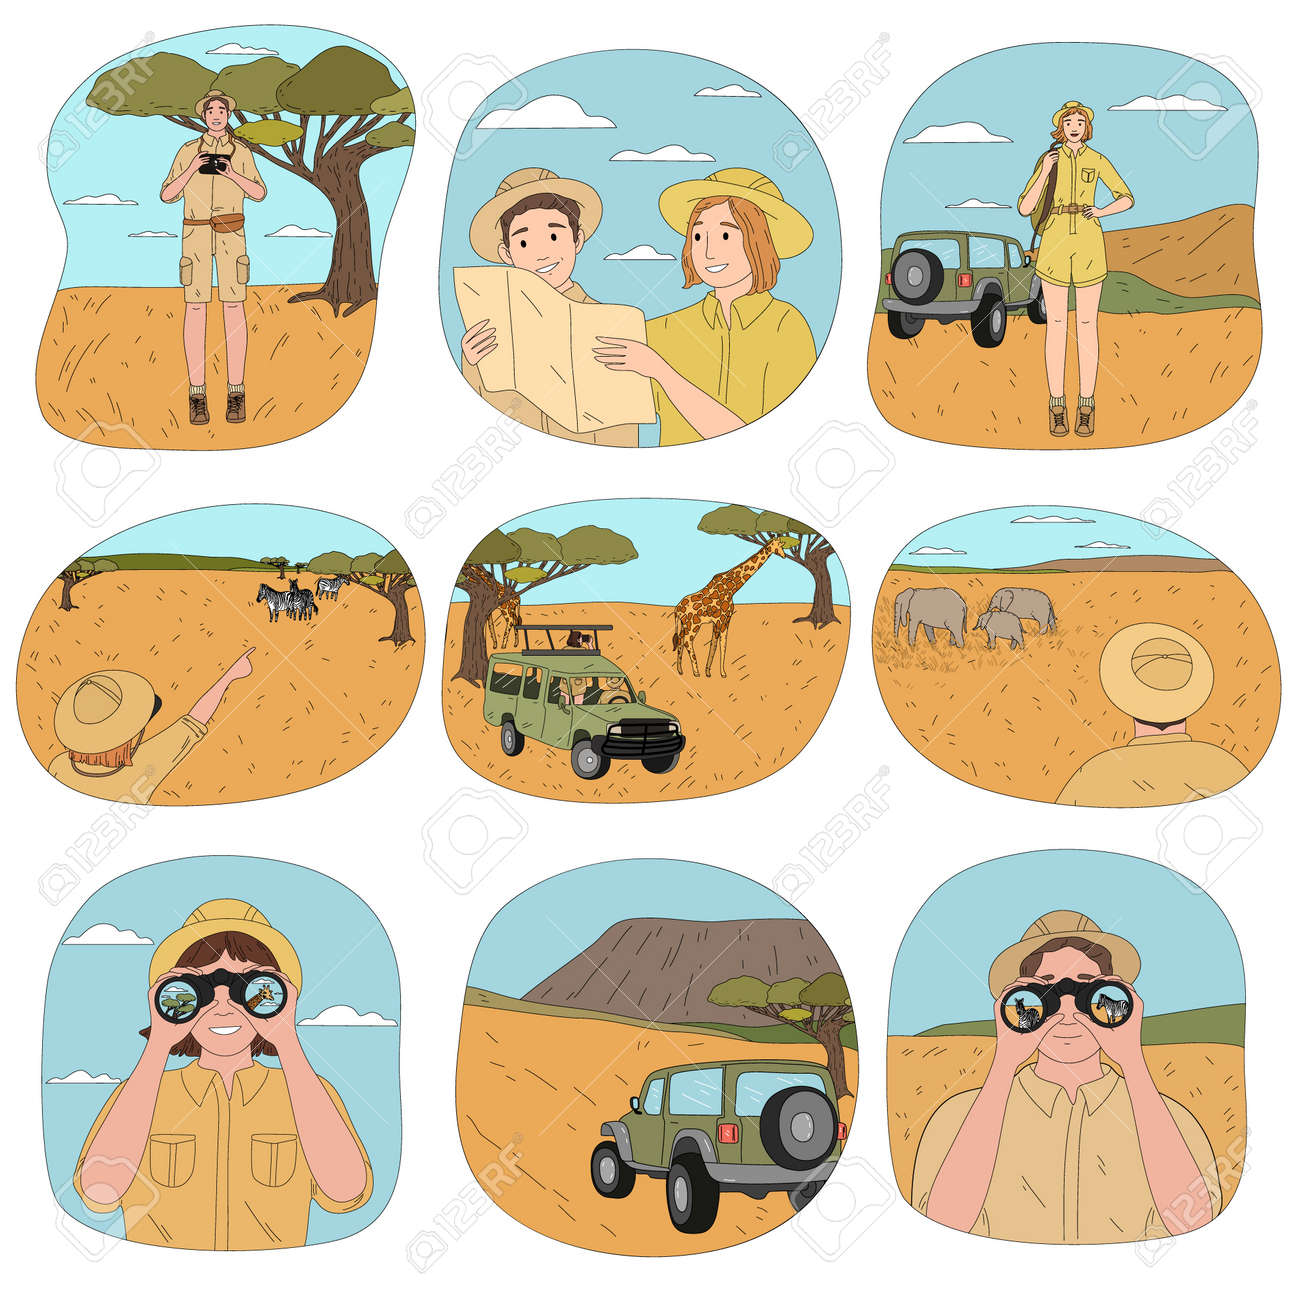 People tourists travelers riding african safari and watching sightseings - 164876700